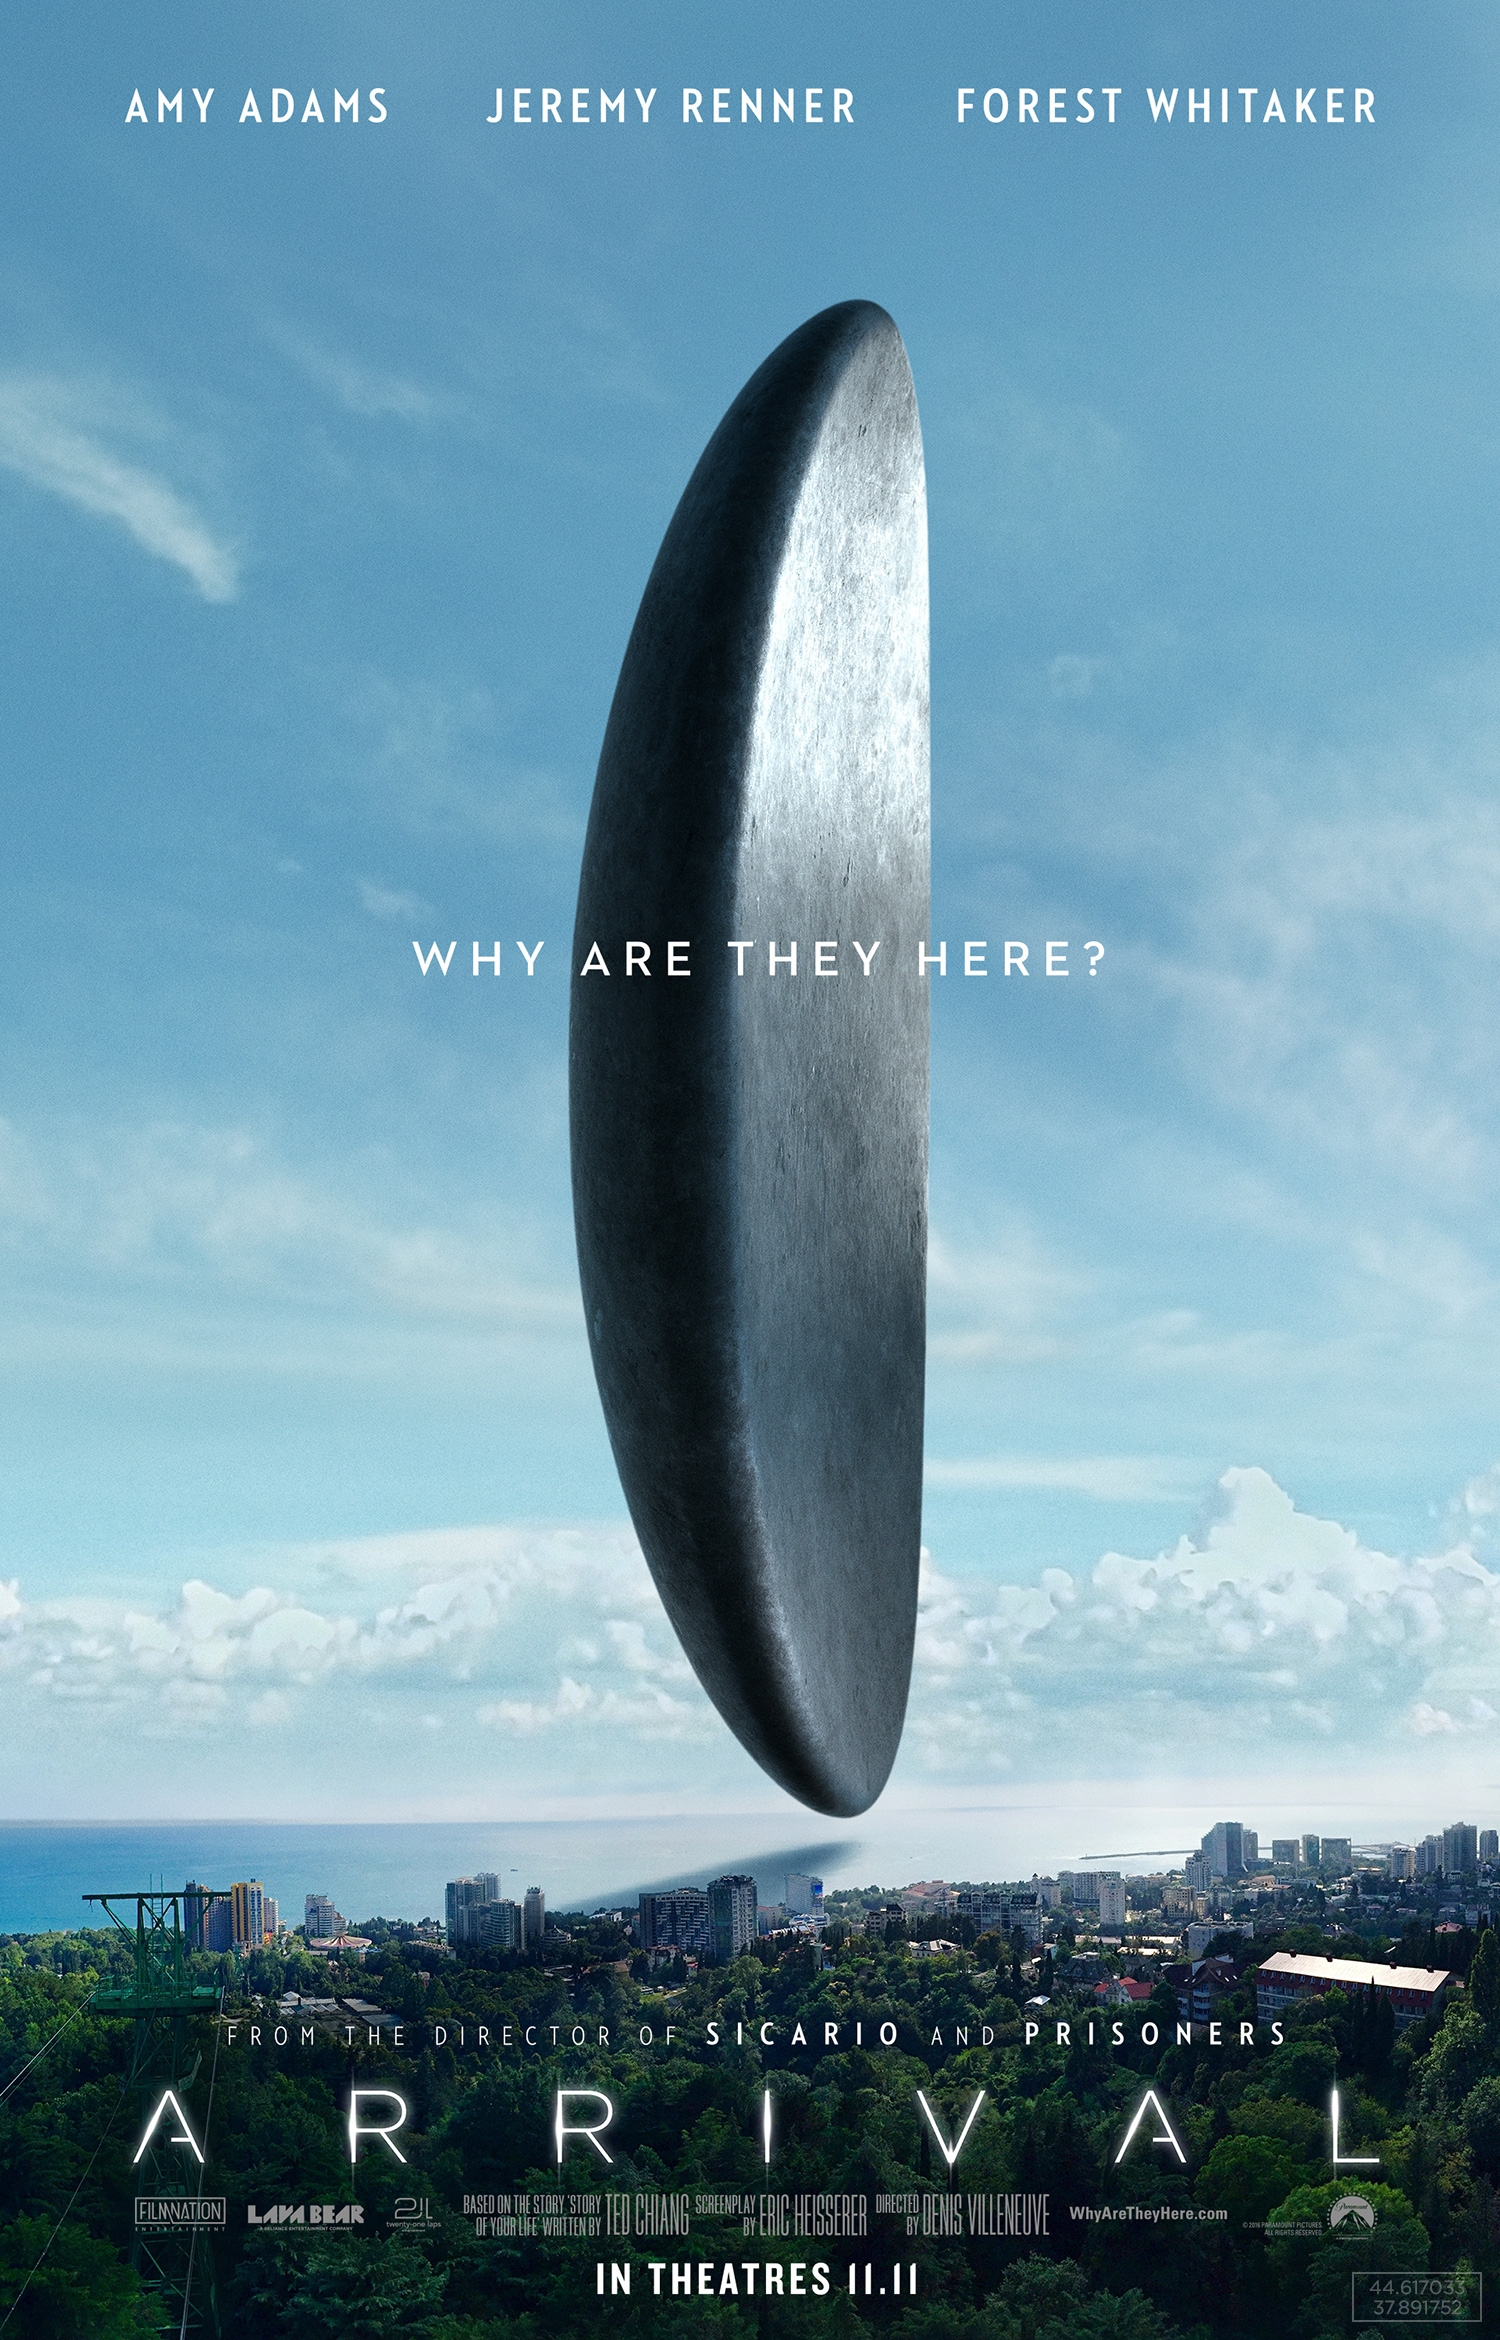 Arrival arrives in theatres tomorrow!